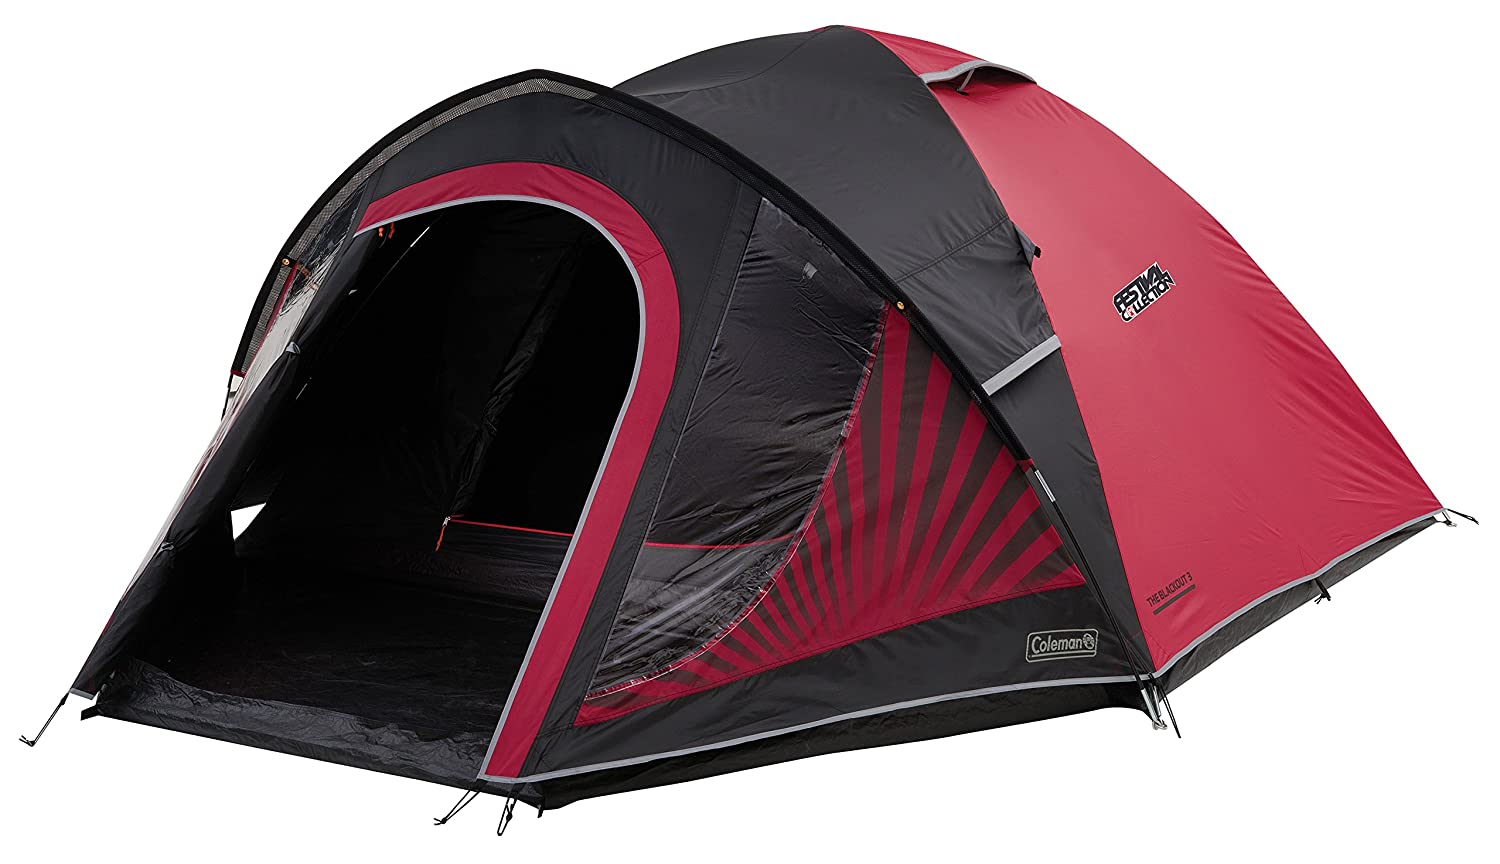 wholesale dealer 11310 6534b Coleman Tent The BlackOut, Festival Camping tent with BlackOut Bedroom  Technology, Festival Essential, Dome Tent, 100% waterproof with sewn in ...